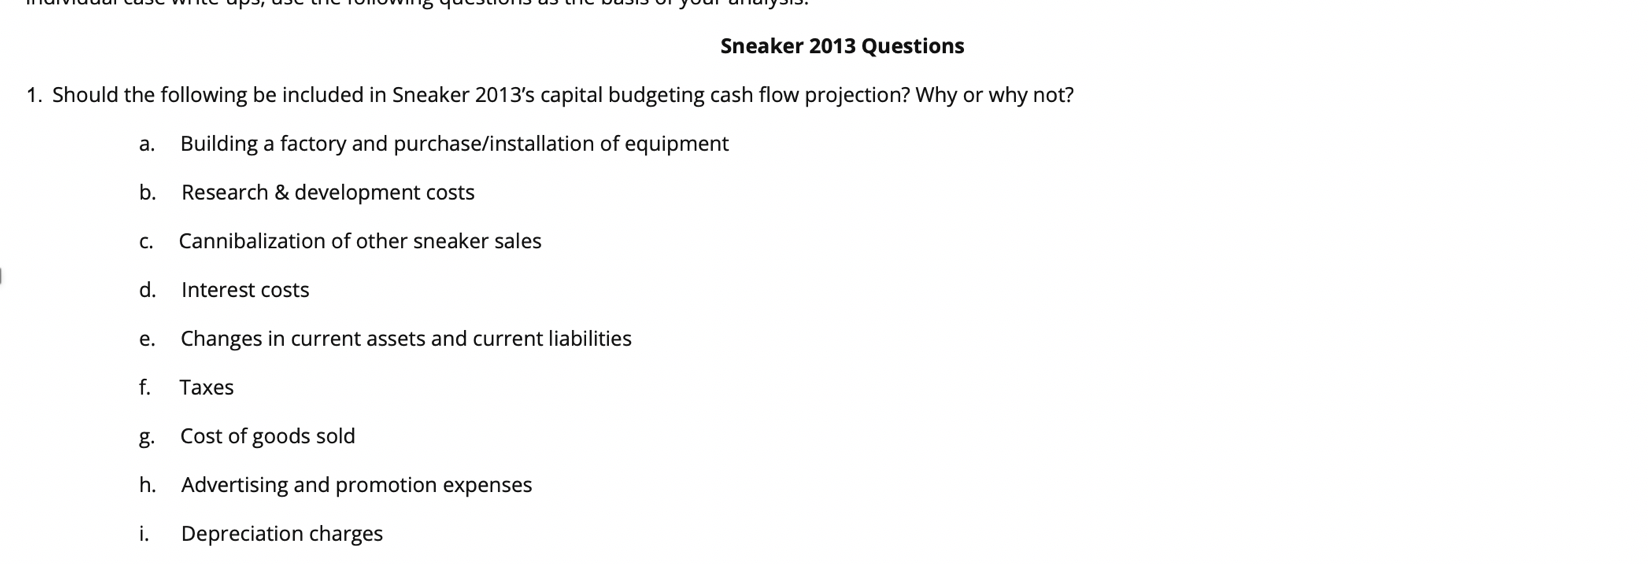 """""""yoar ananyPIP, Sneaker 2013 Questions 1. Should the following be included in Sneaker 2013's capital budgeting cash flow projection? Why or why not? Building a factory and purchase/installation of equipment а. Research & development costs b. Cannibalization of other sneaker sales с. d. Interest costs Changes in current assets and current liabilities е. f Таxes Cost of goods sold Advertising and promotion expenses h. i. Depreciation charges"""